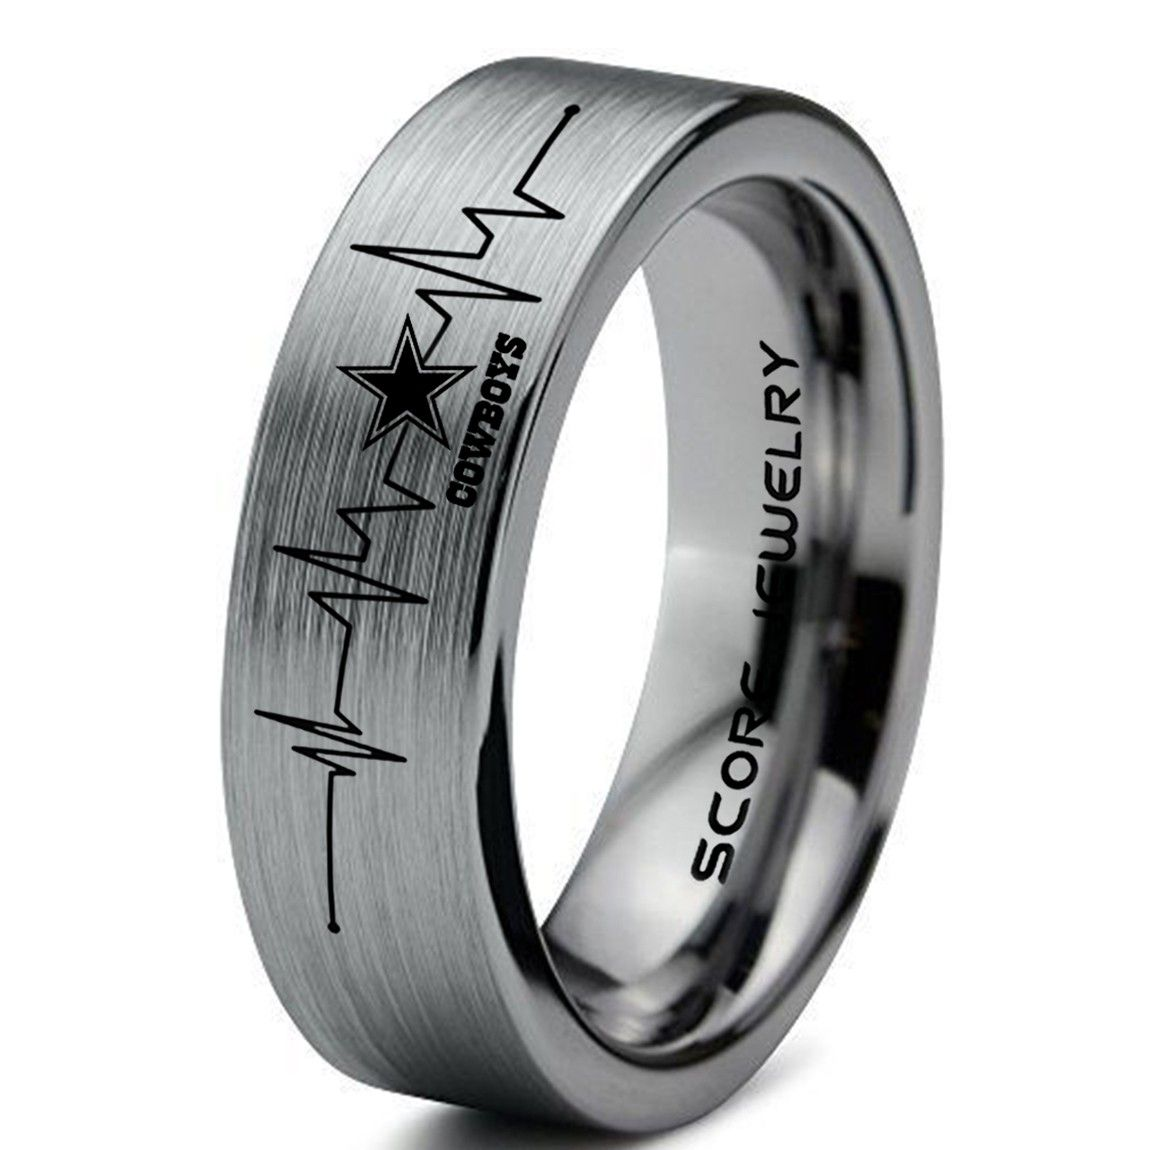 Dallas Cowboys Ring Dallas Cowboys Band Dallas Cowboys Jewelry Dallas Cowboy Beautiful Engagement Rings Tungsten Carbide Wedding Bands Wedding Rings Engagement